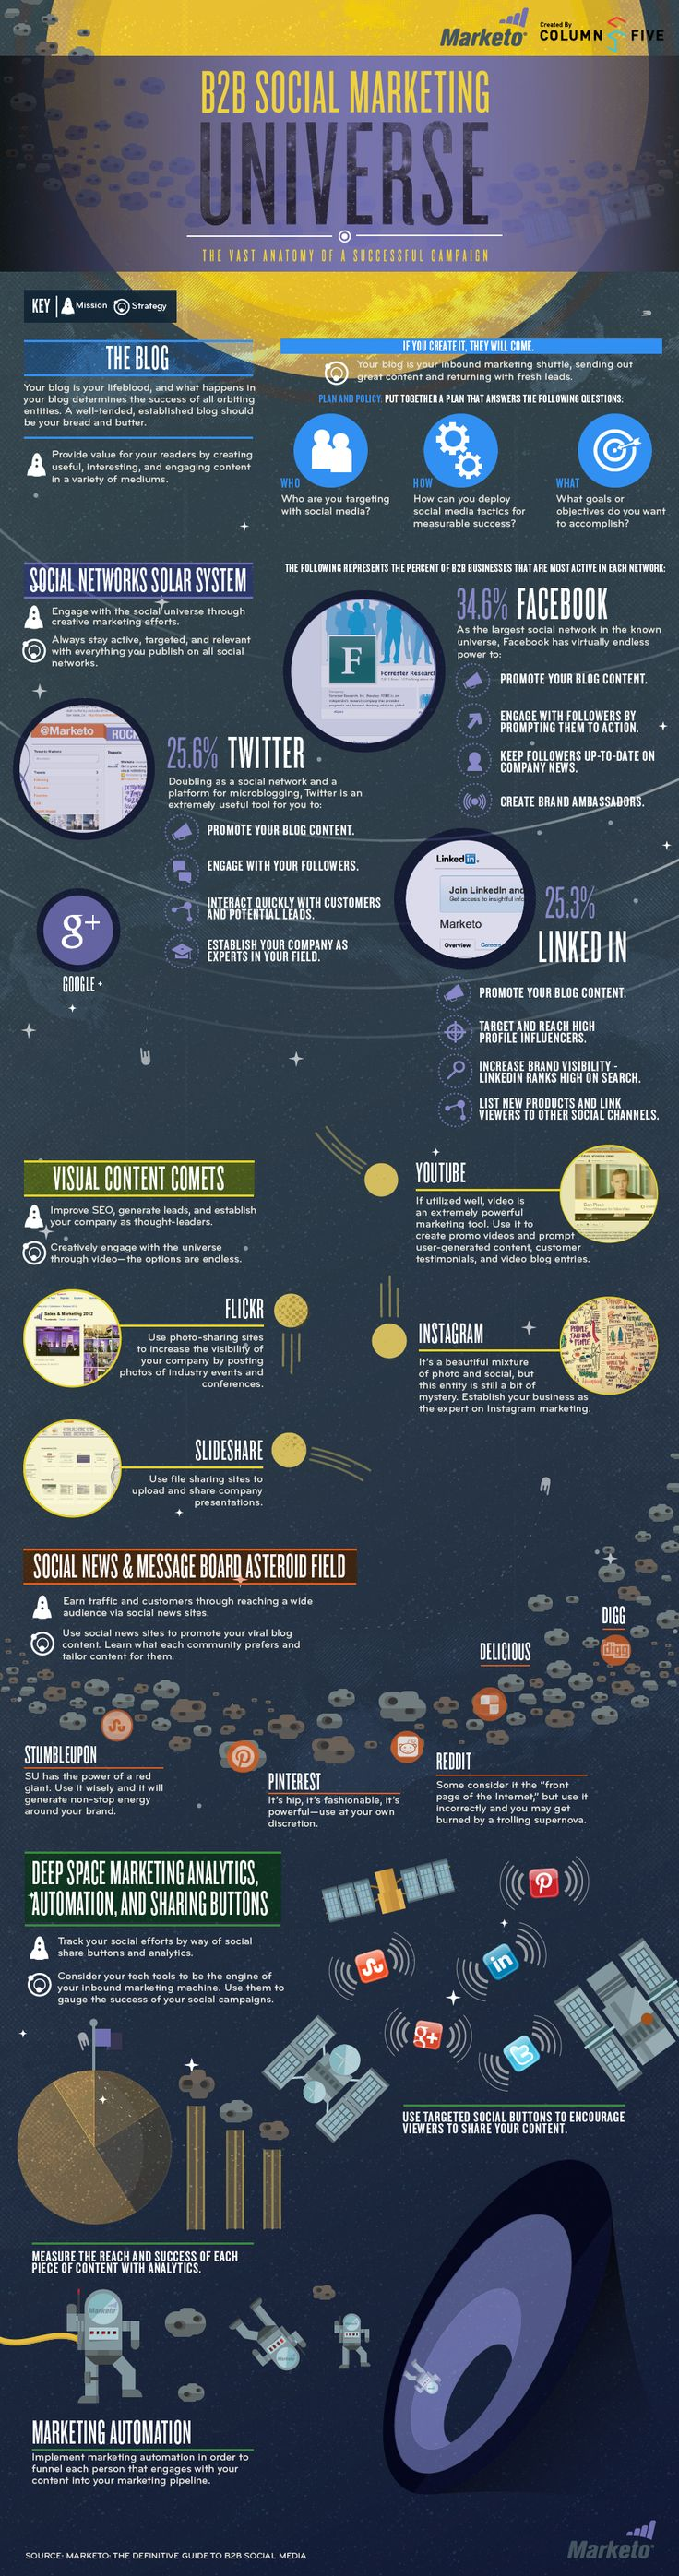 B2B Social Marketing Universe - Infographic